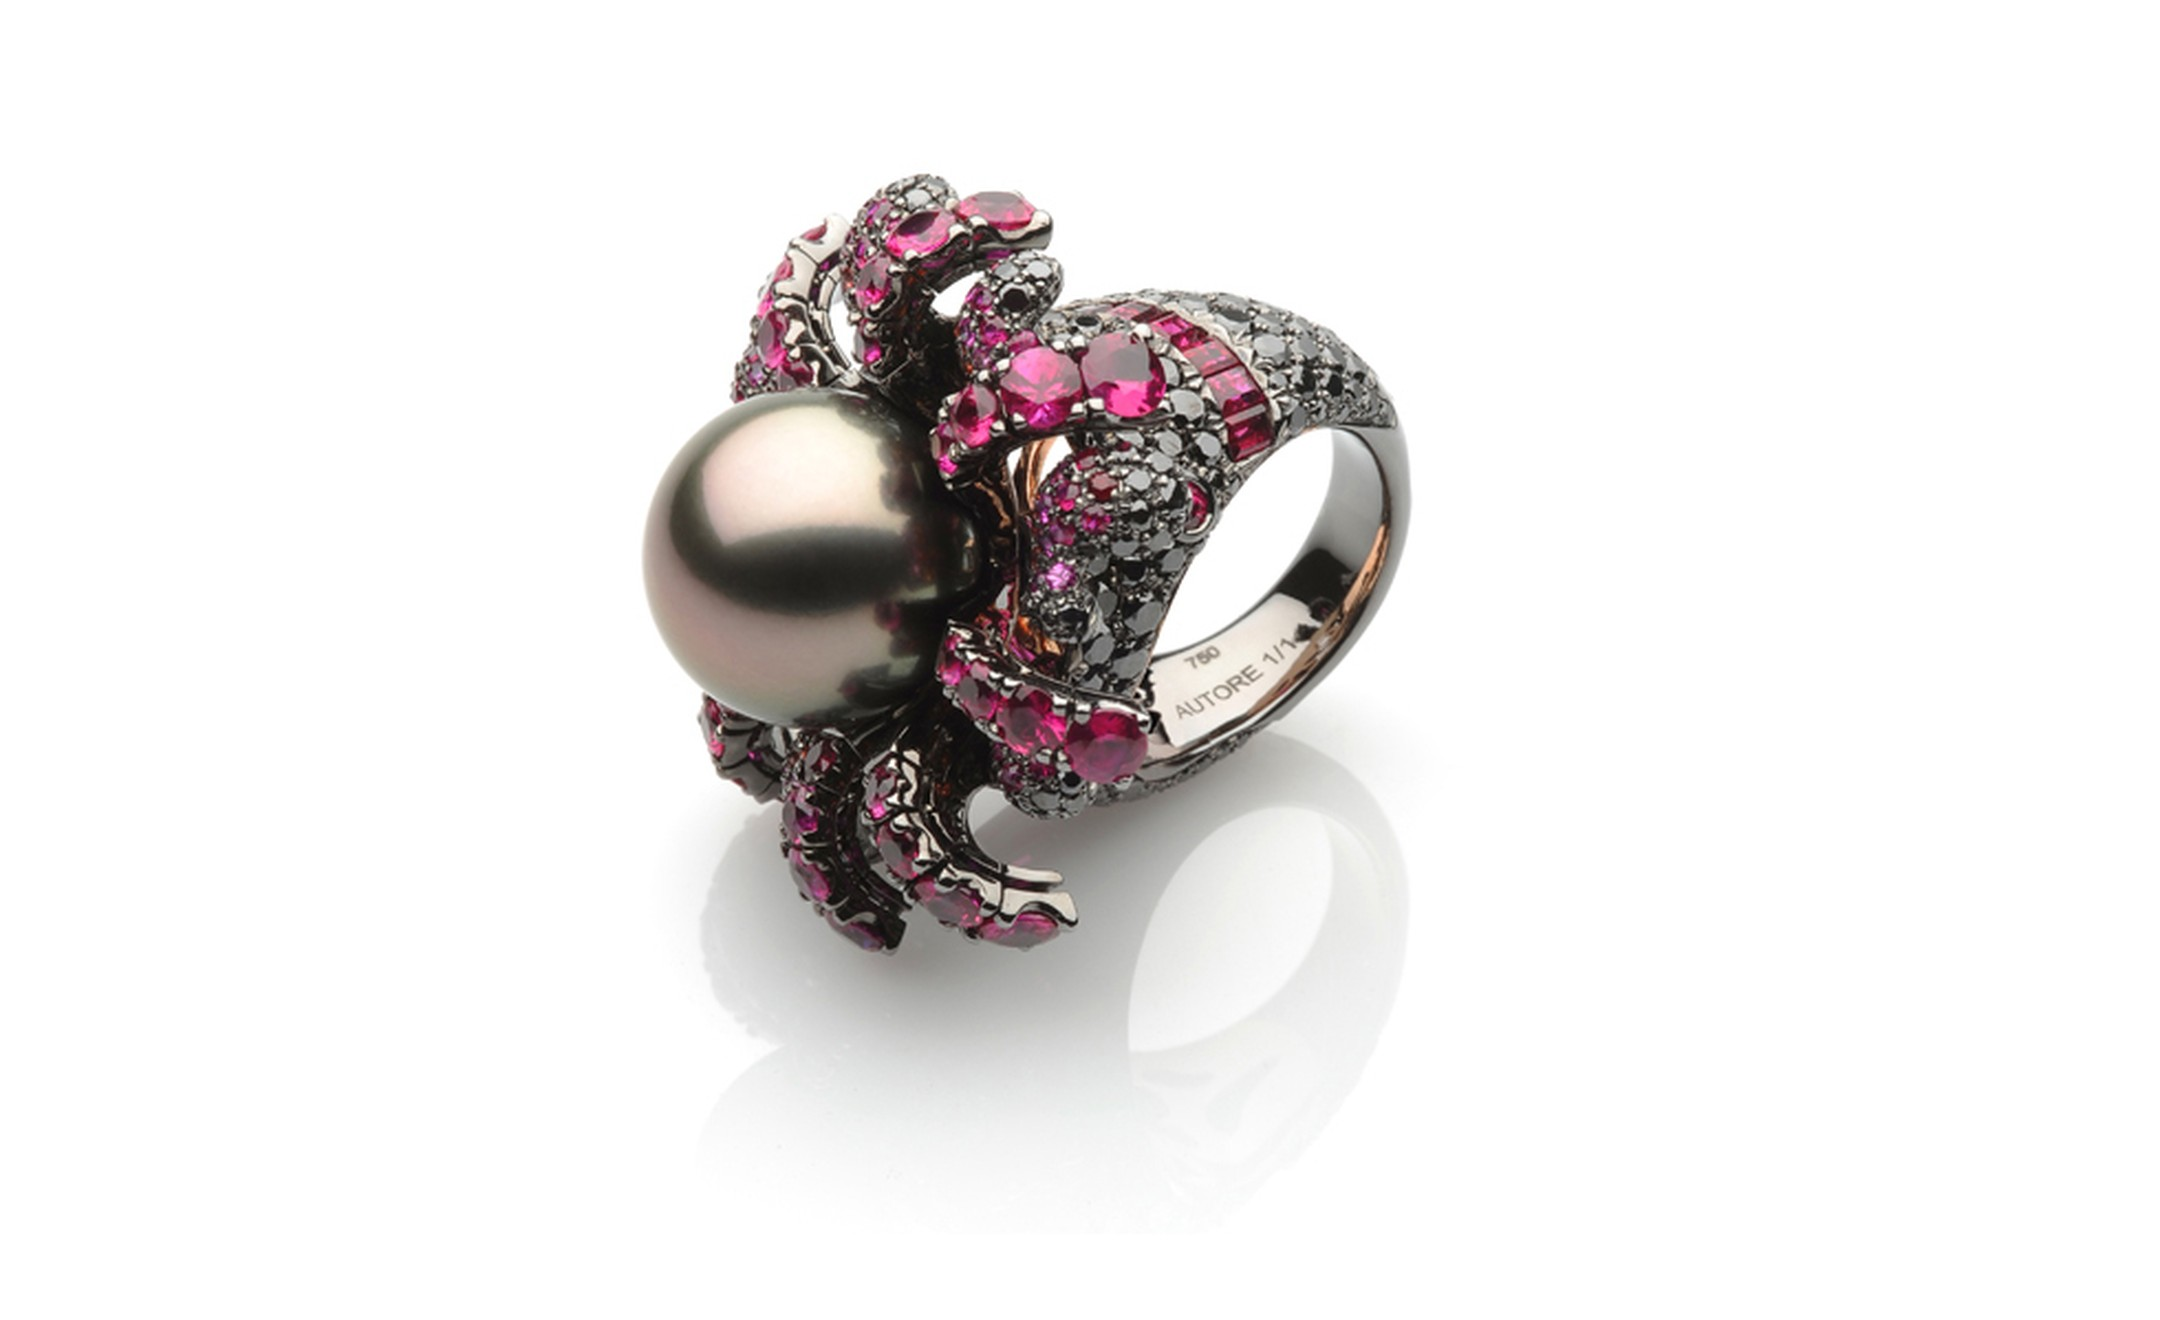 Autore, Fire & Ice Cooling Volcano ring in white gold, with black rhodium and rose gold, Tahitian South Sea pearls, rubies, orange sapphires and black diamonds. $50,000 AUD